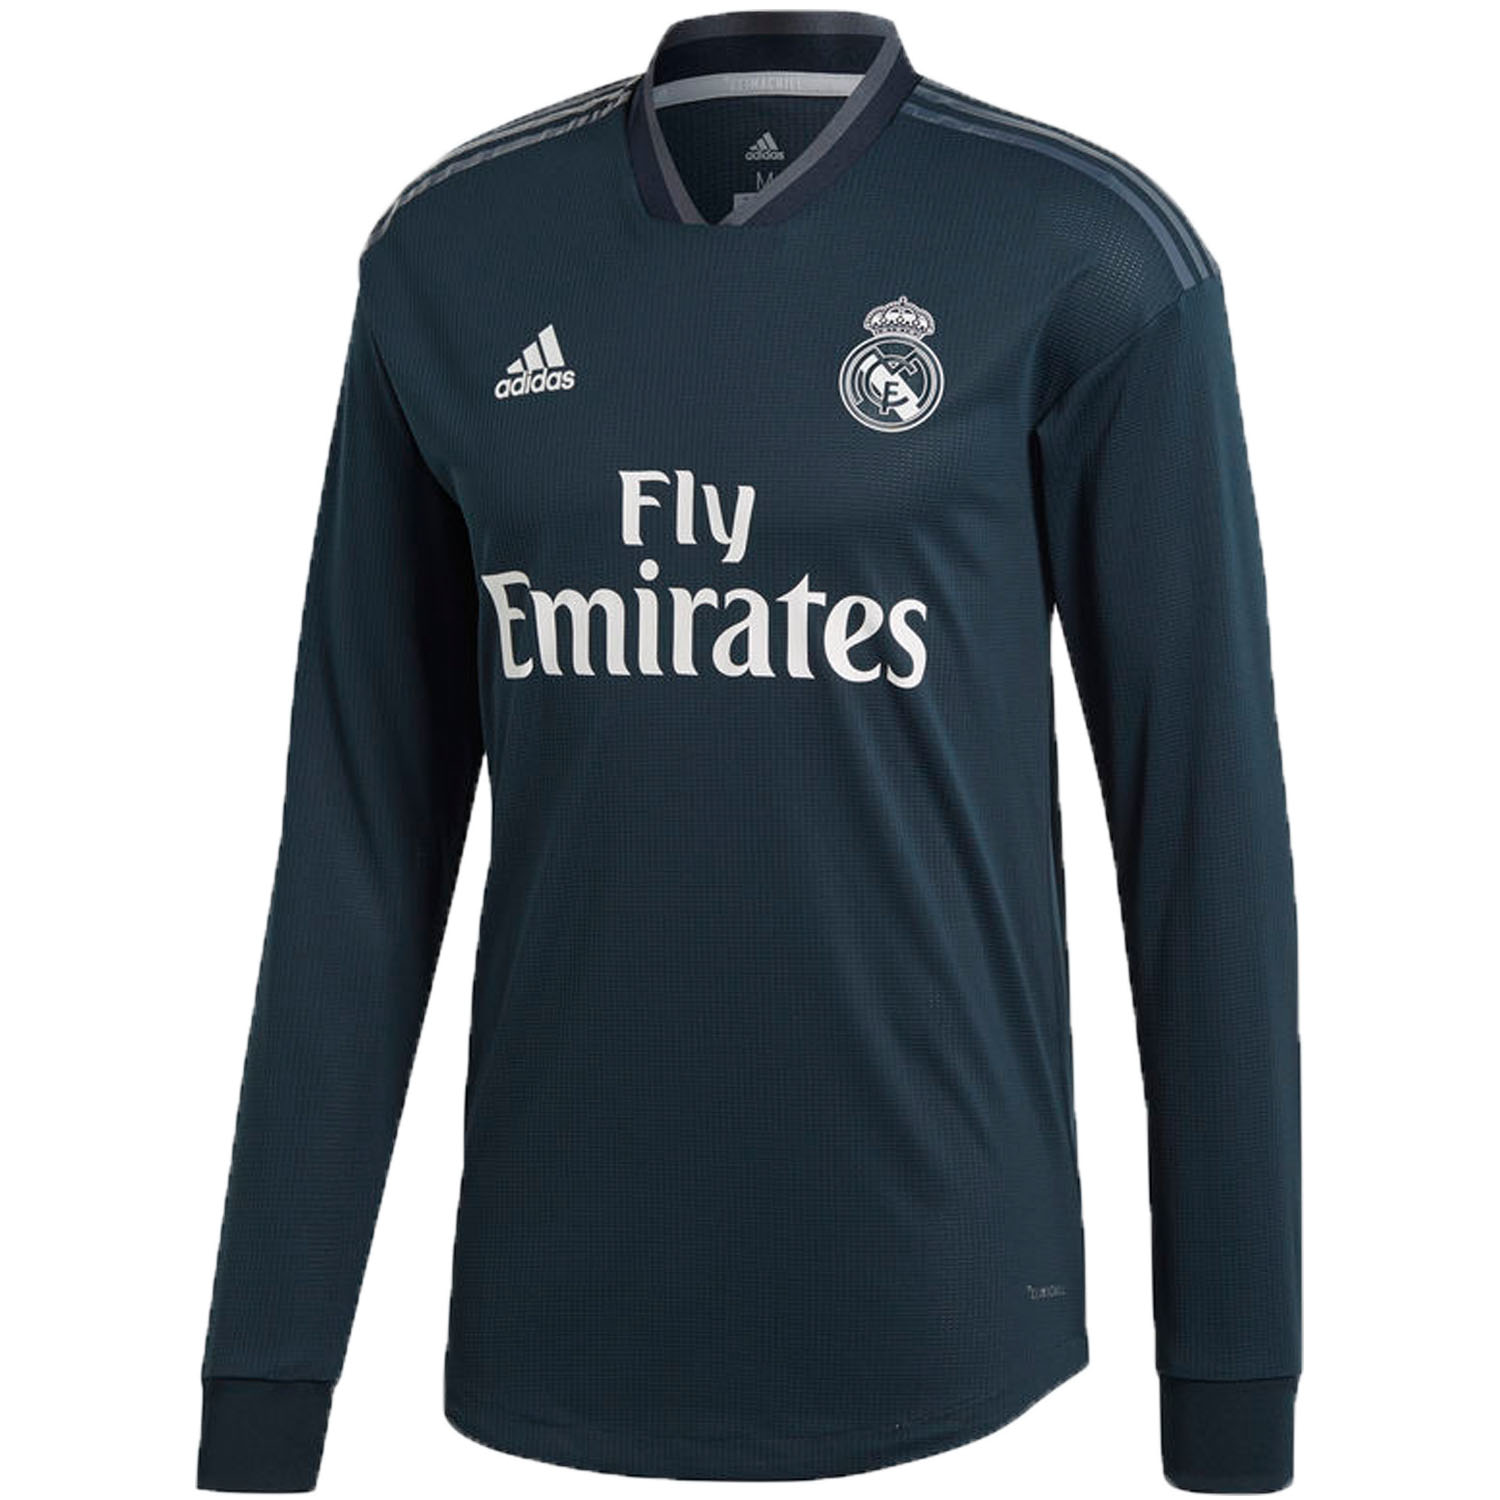 36d60d6bcc38 Customize your jersey with the new officially licensed Real Madrid name and  number. Please allow 1-2 days for customization.